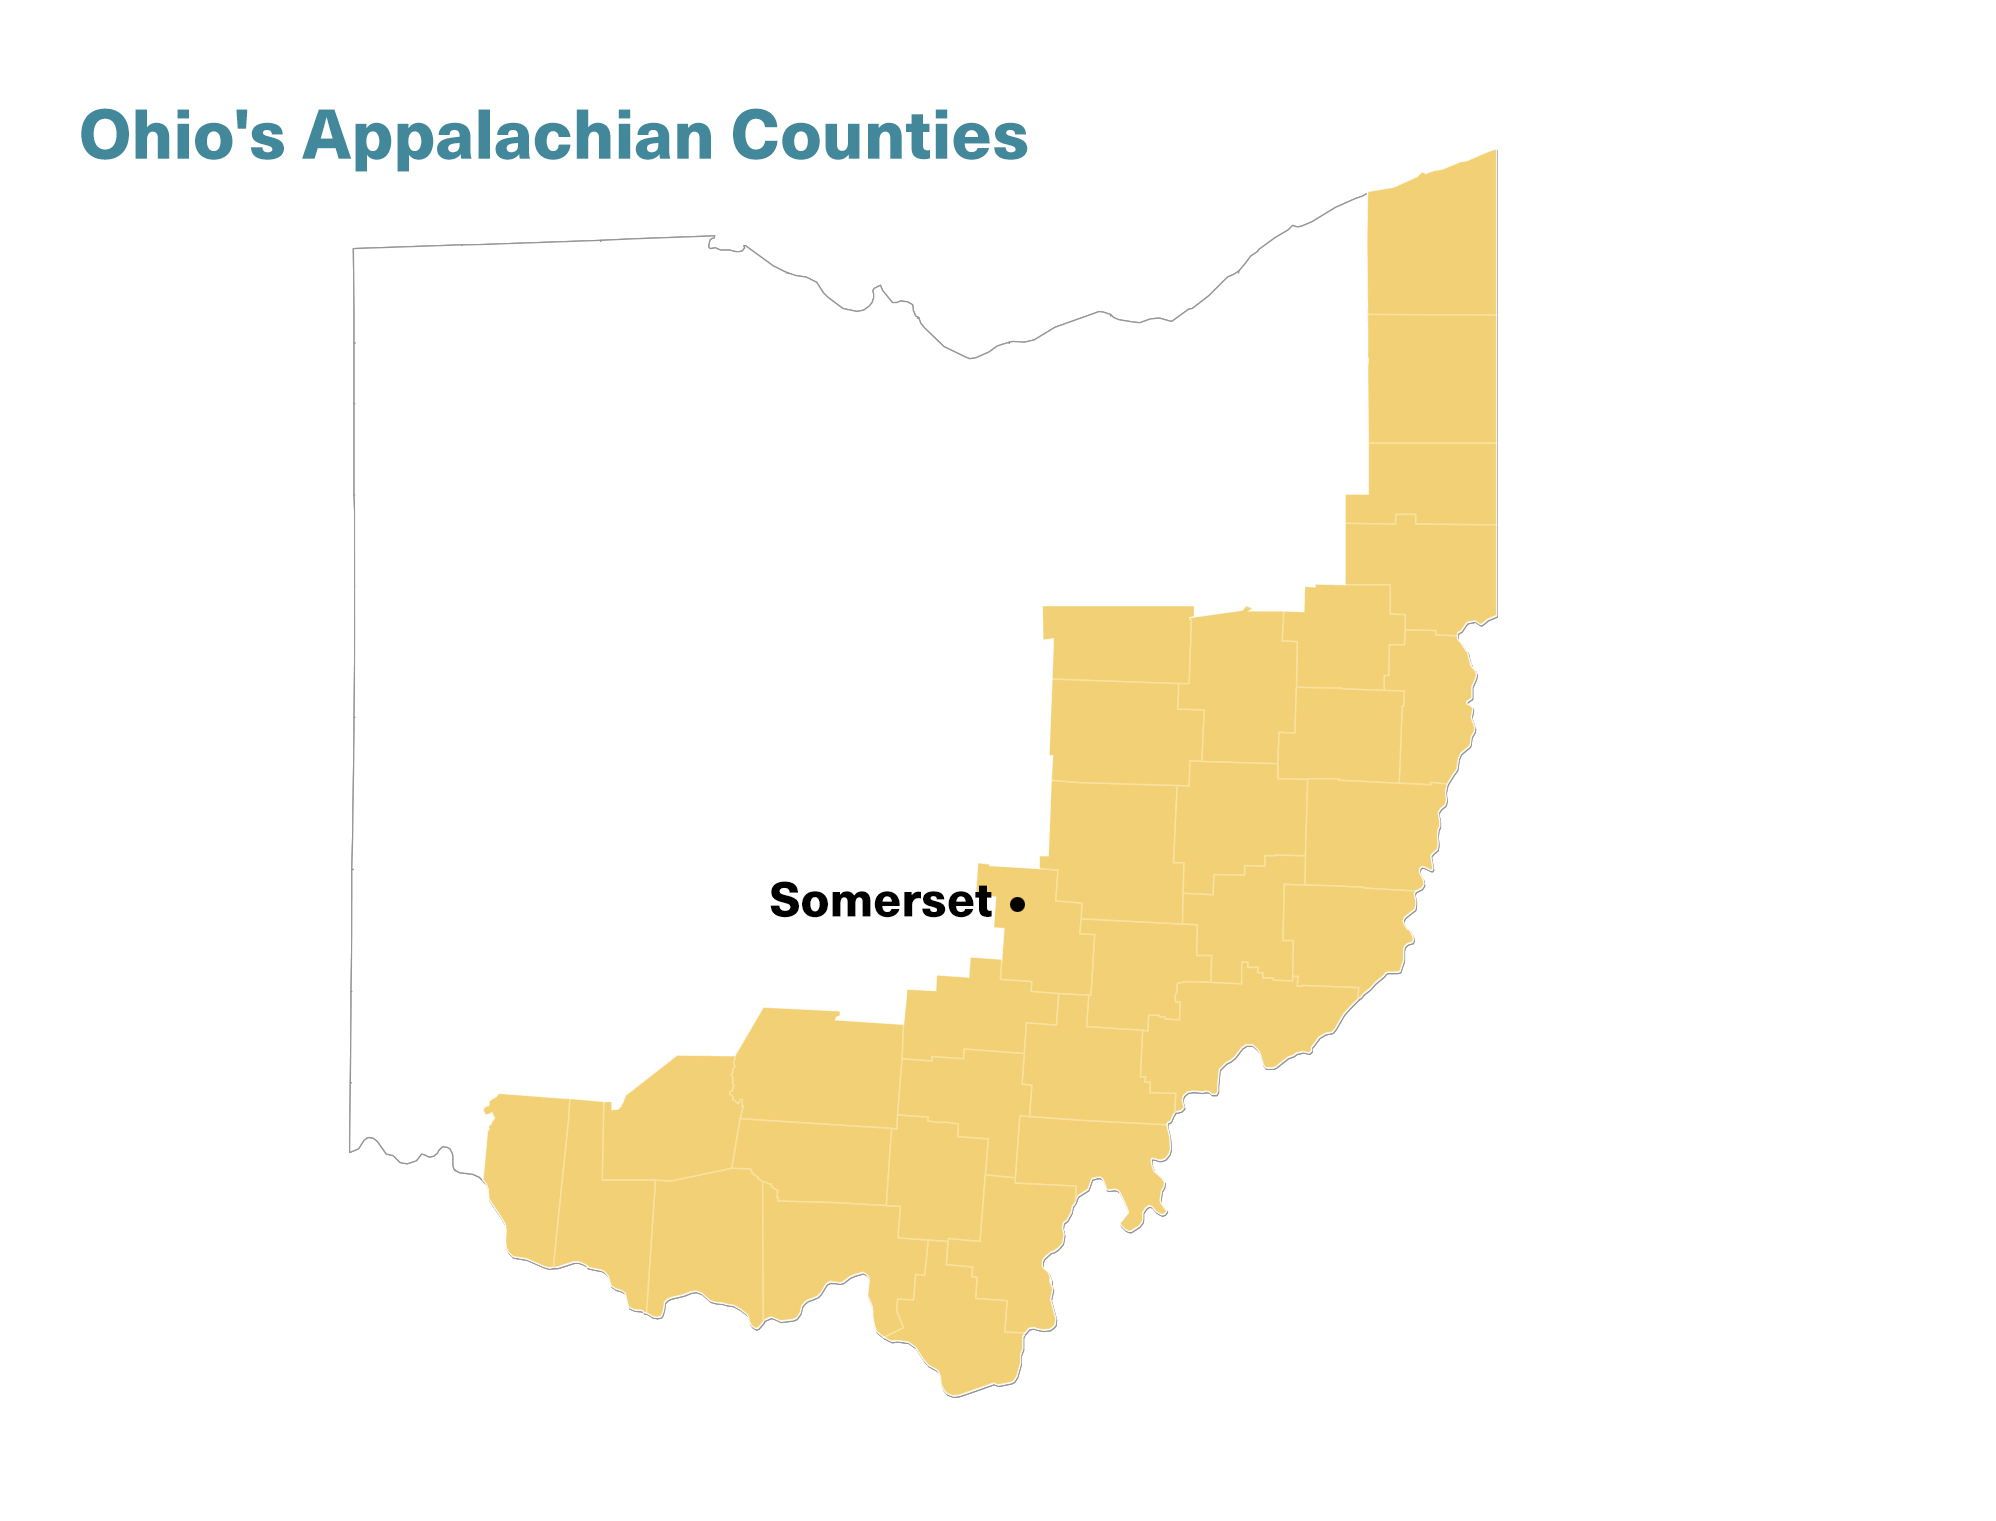 Location of Somerset, Ohio, on a map of Appalachian Ohio